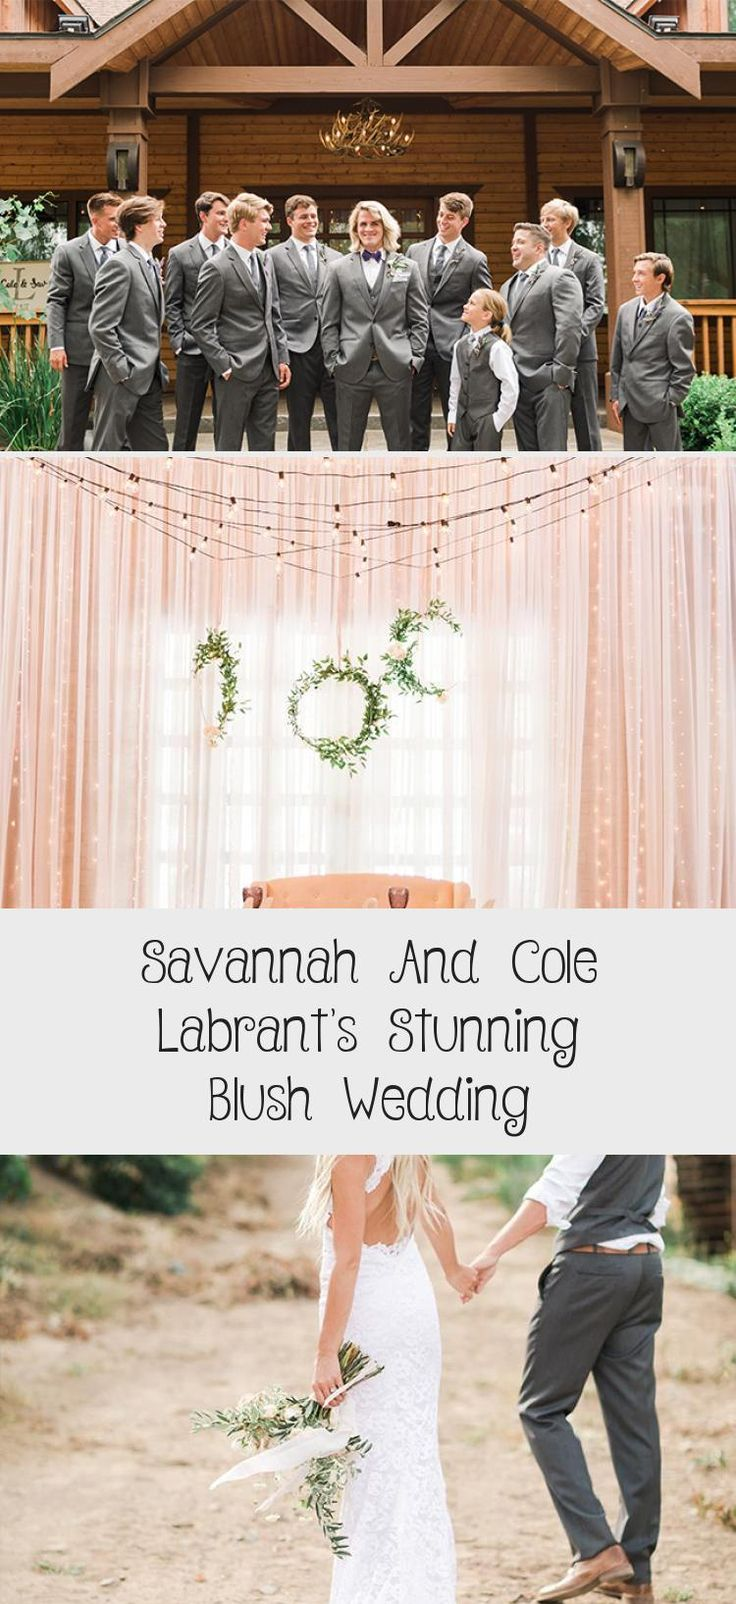 Savannah and Cole LaBrant's Stunning Blush Wedding - Inspired By This #BridesmaidDressesIndian #CasualBridesmaidDresses #BridesmaidDressesWinter #BridesmaidDressesSummer #GreyBridesmaidDresses